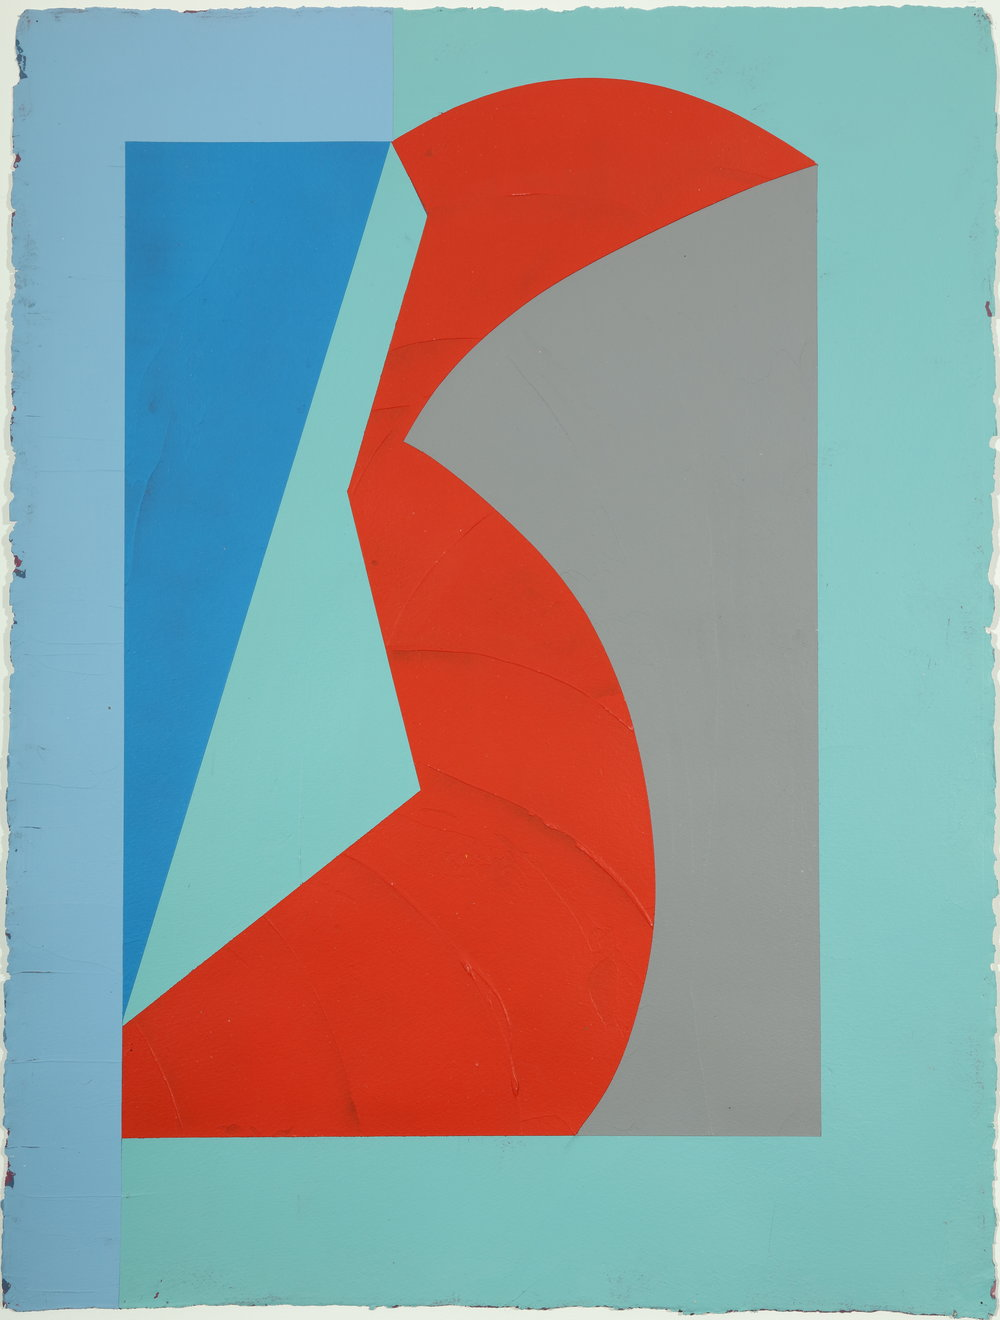 Untitled,   1983    Acrylic and modeling paste on paper 30.125H x 22.875W inches unframed $5,500 unframed $6,000 framed